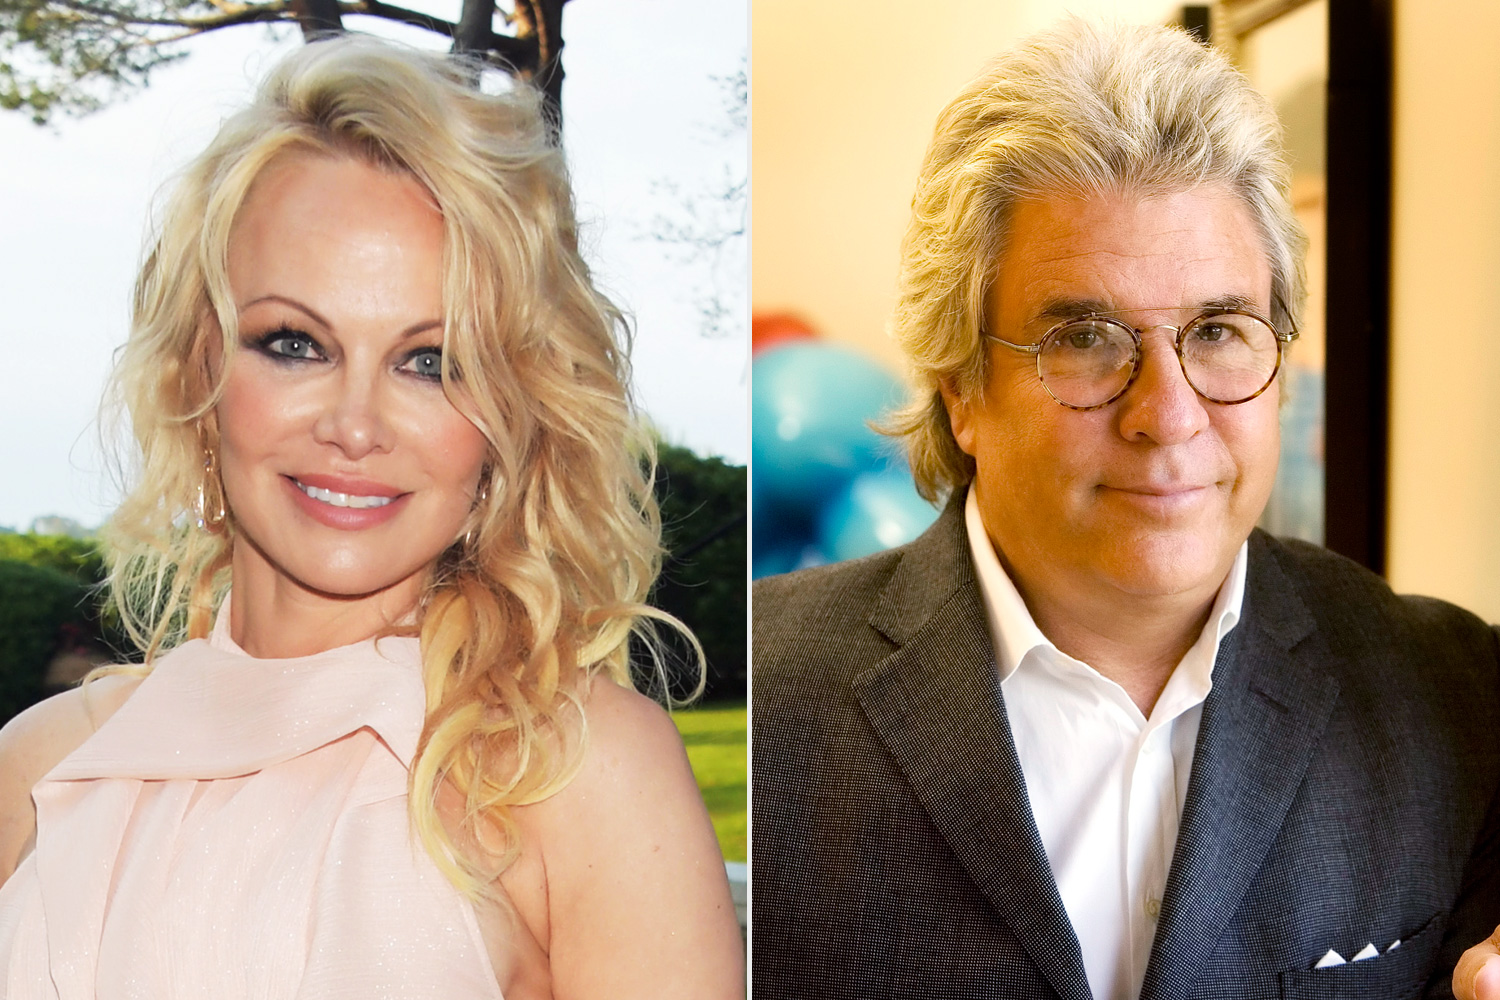 Pamela Anderson's ex Jon Peters engaged again